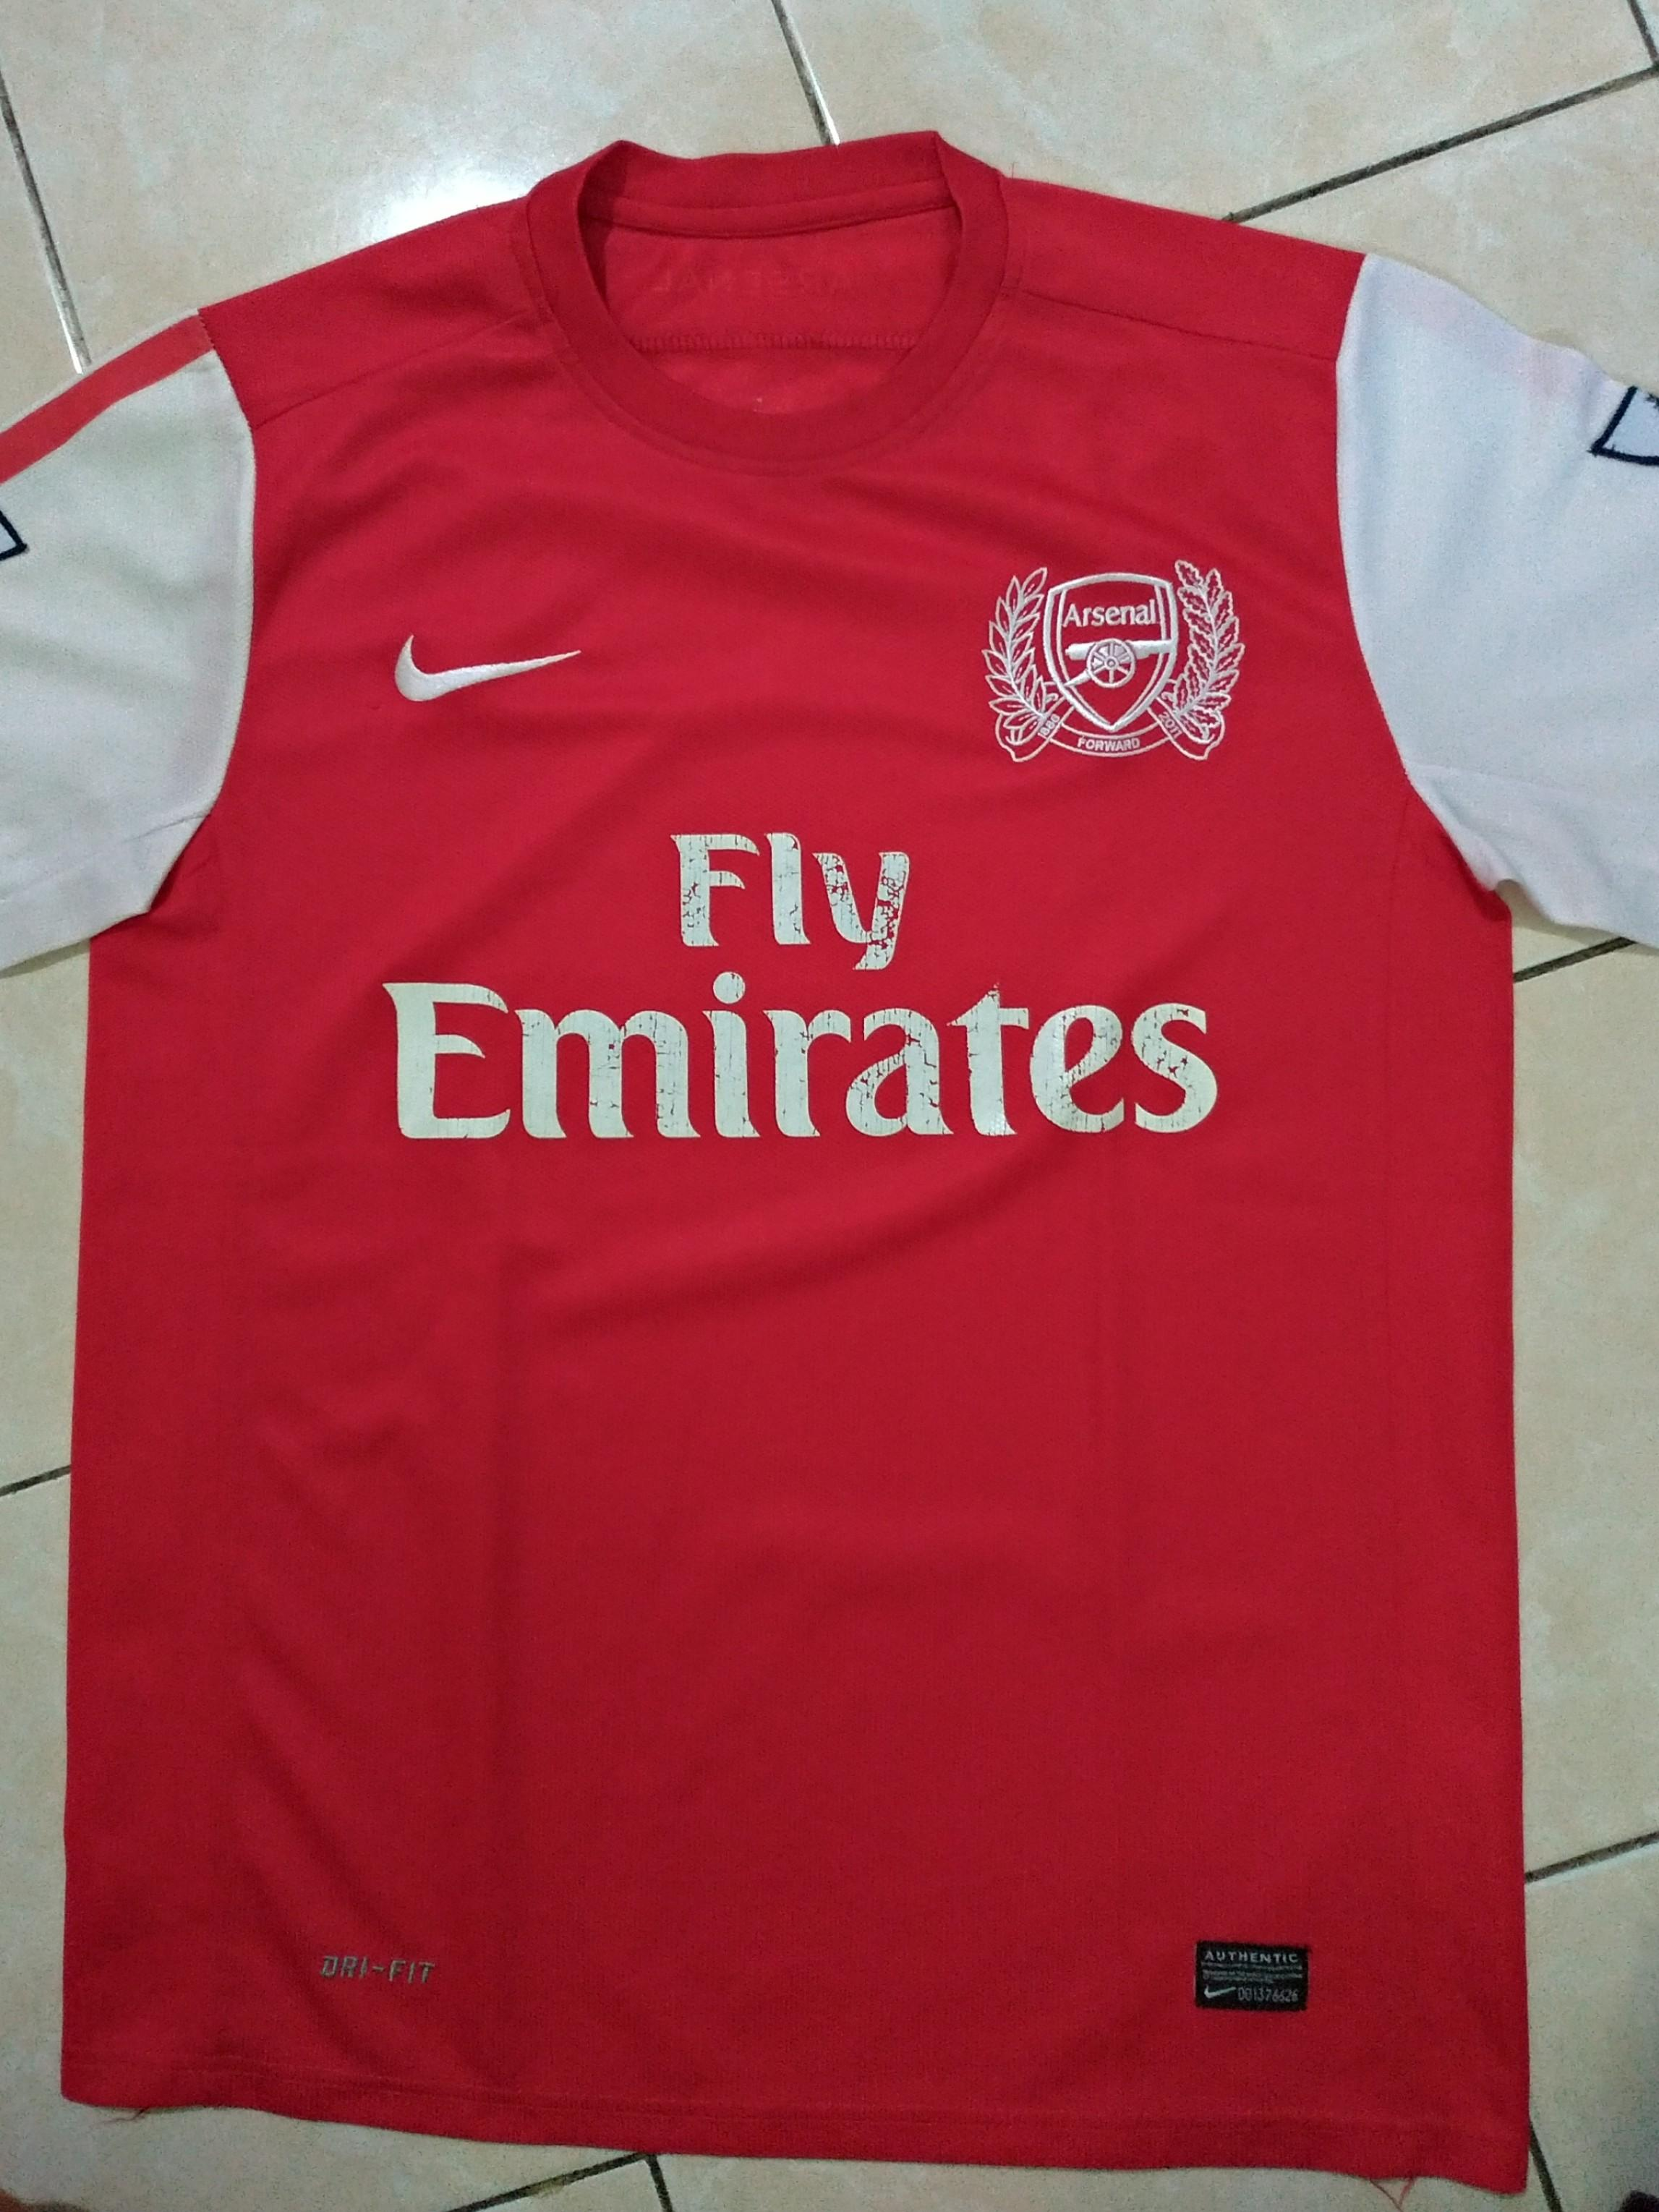 Arsenal jersey 2012/2013 home